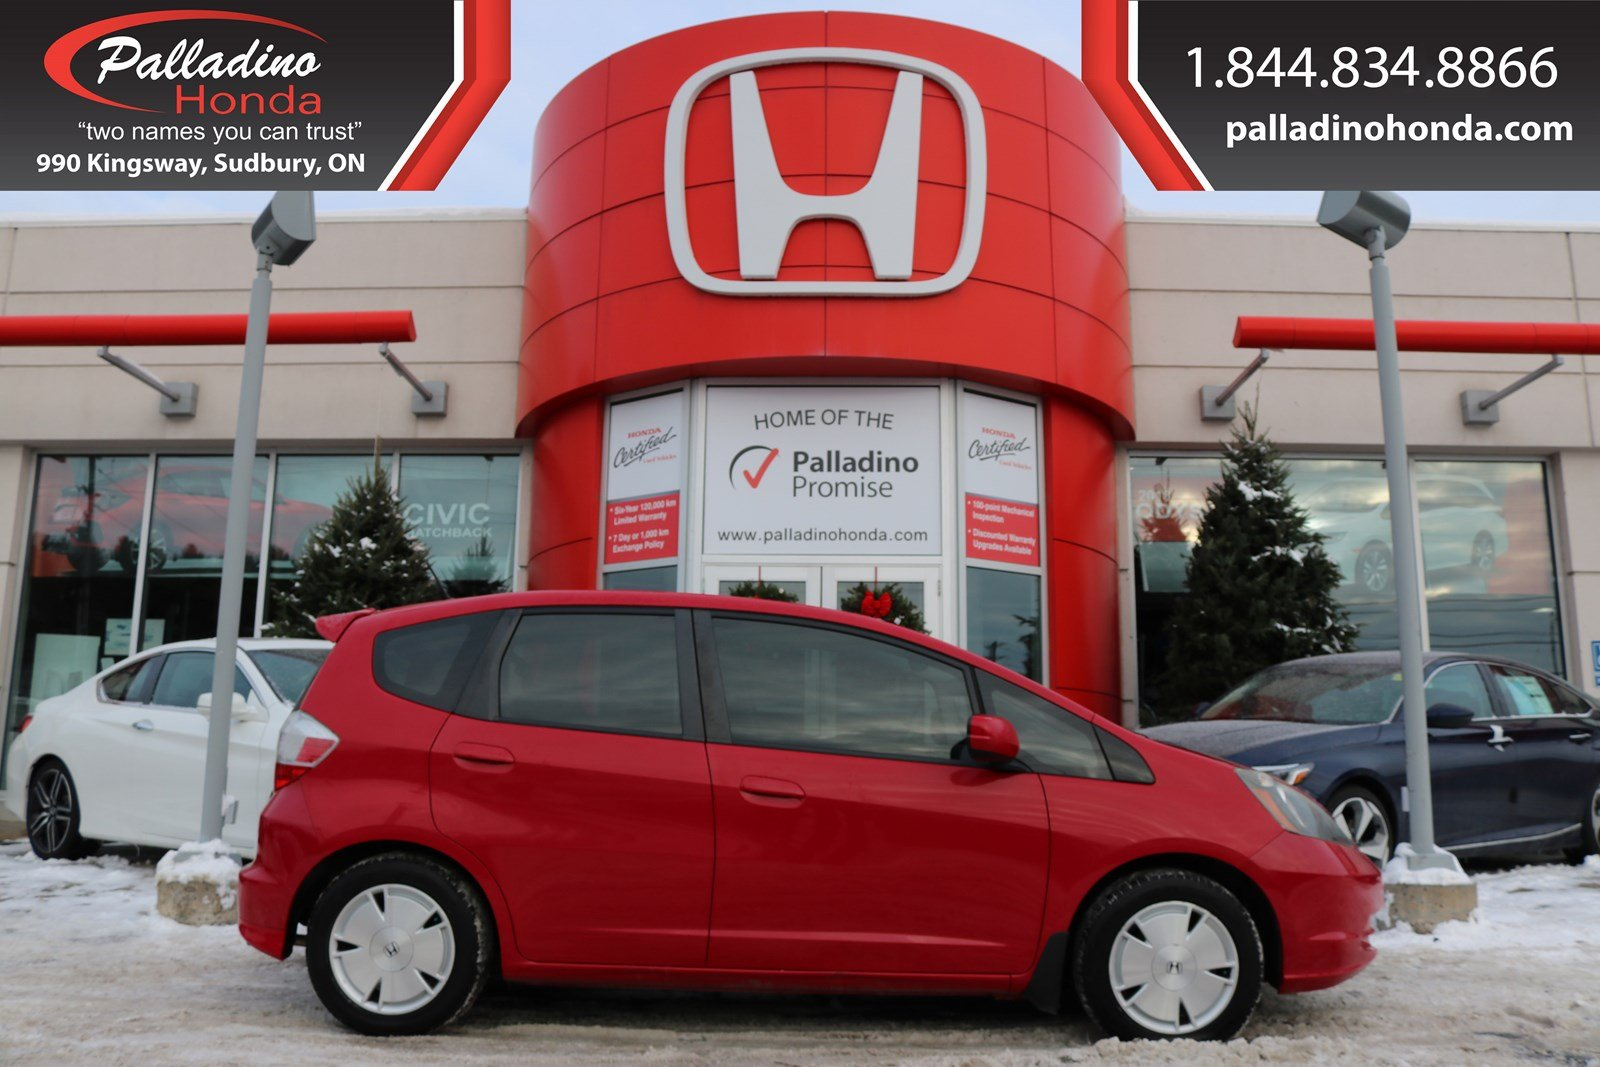 Pre-Owned 2010 Honda Fit LX - CERTIFIED - NEW FRONT BRAKES - EXTREMELY LOW